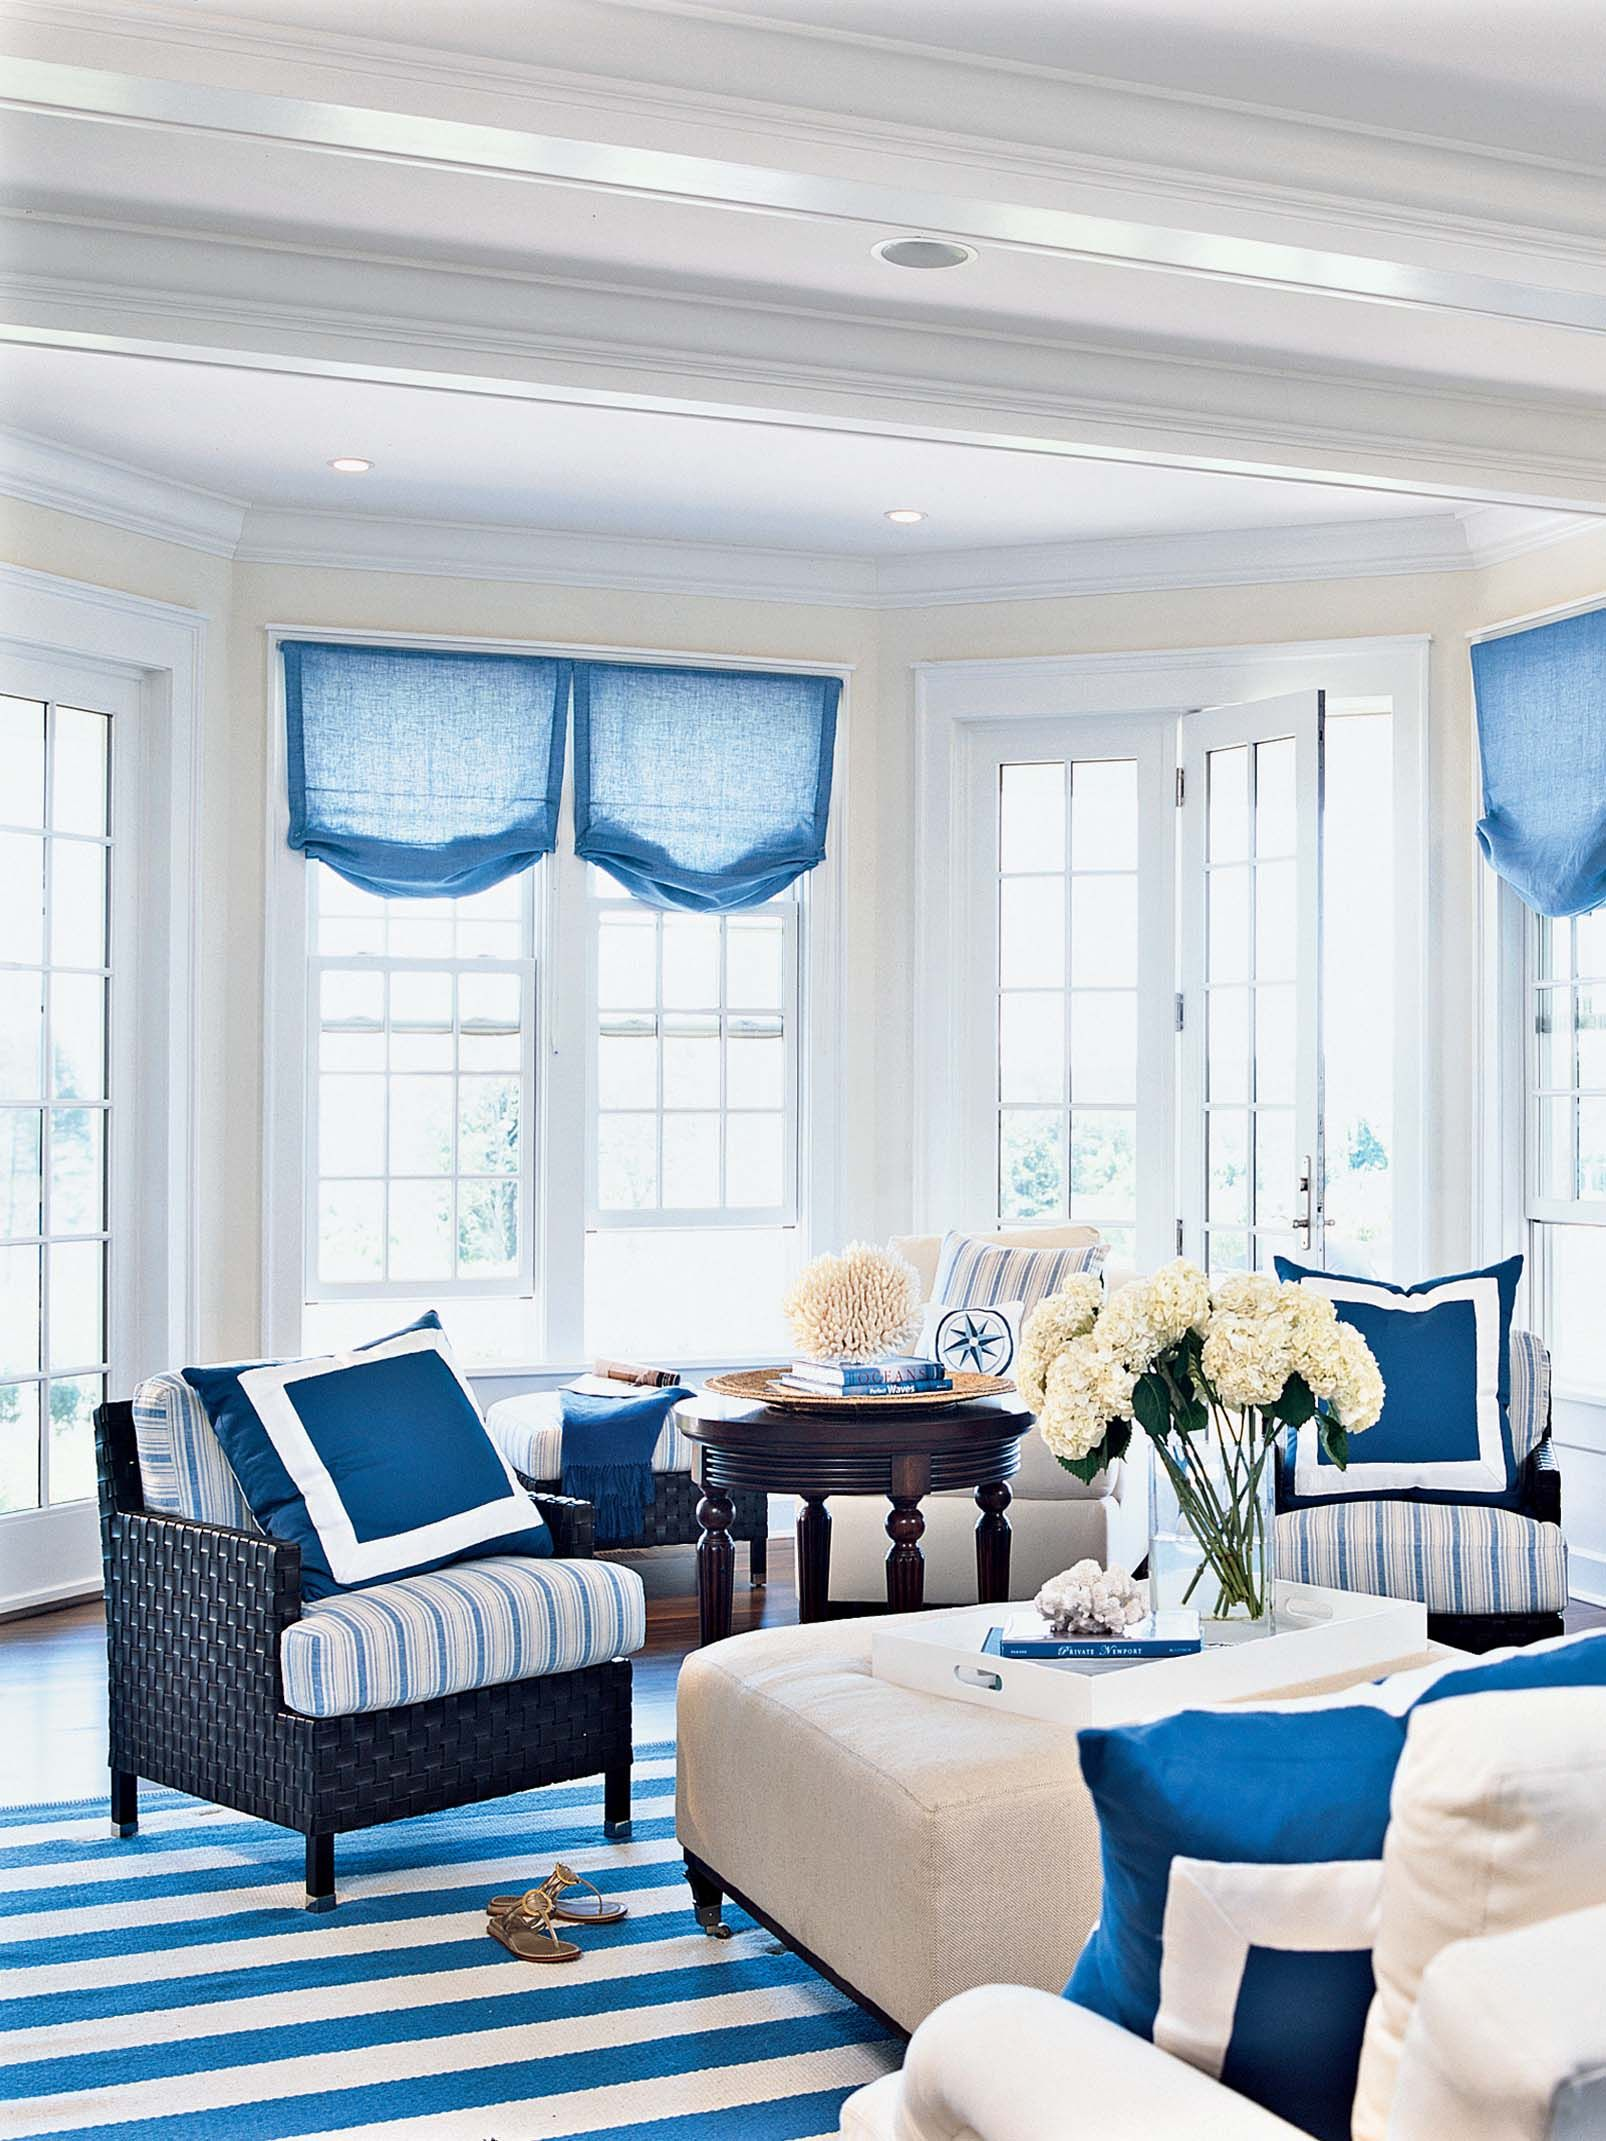 pinterest home decor living room%0A Interior Living Room   Winsome Blue Living Room Color Scheme Design And  Pics  Fabulous Blue Over Blinds And Cushion As Inspiring Blue Living Room  With